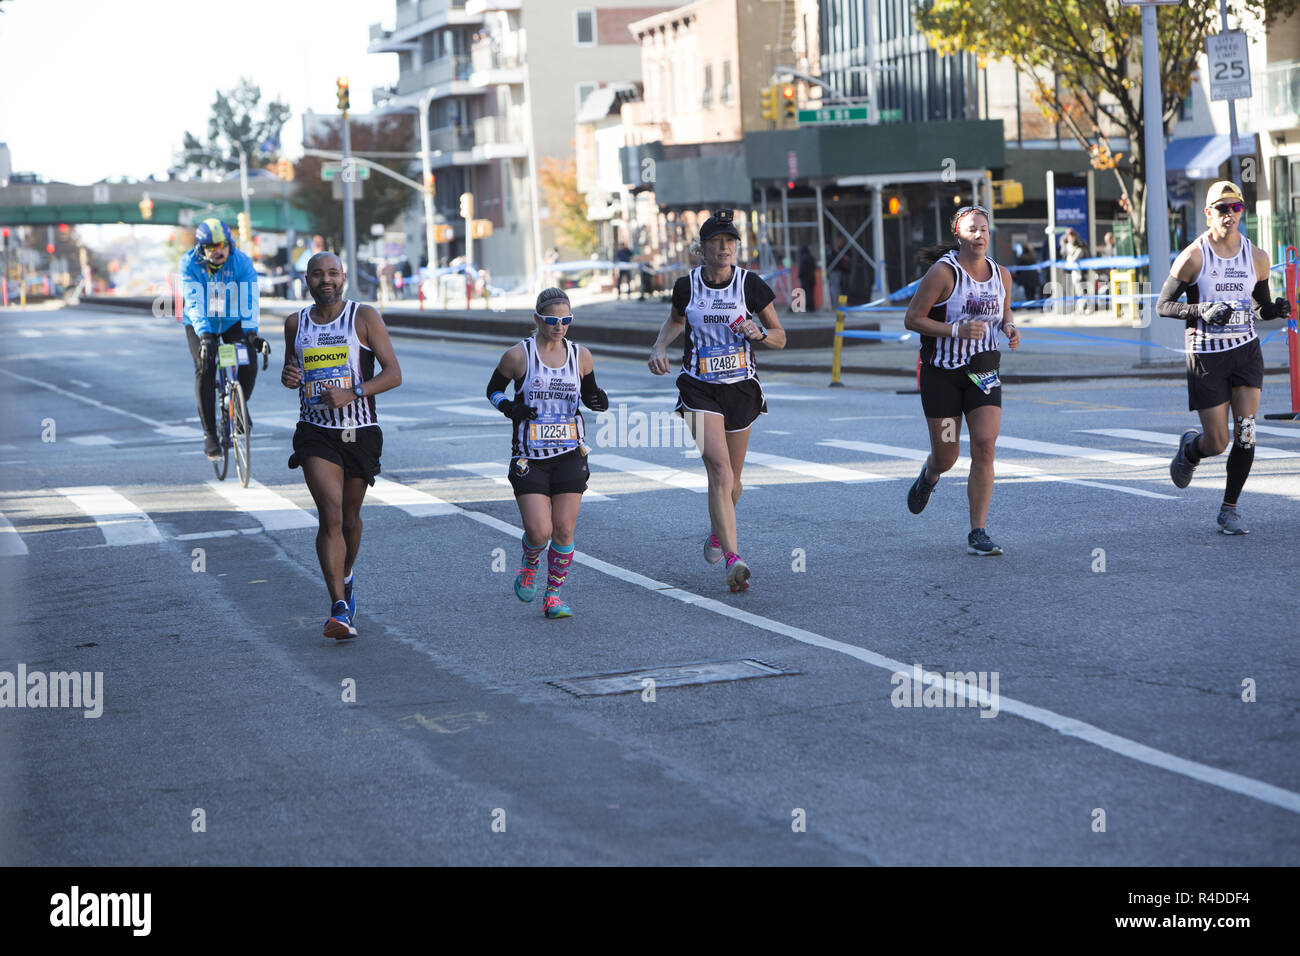 8e51cbb13 Runners cruise down 4th Avenue in Brooklyn during the first 3rd of the 2018 New  York City Marathon. These special runners each represent one of the five ...